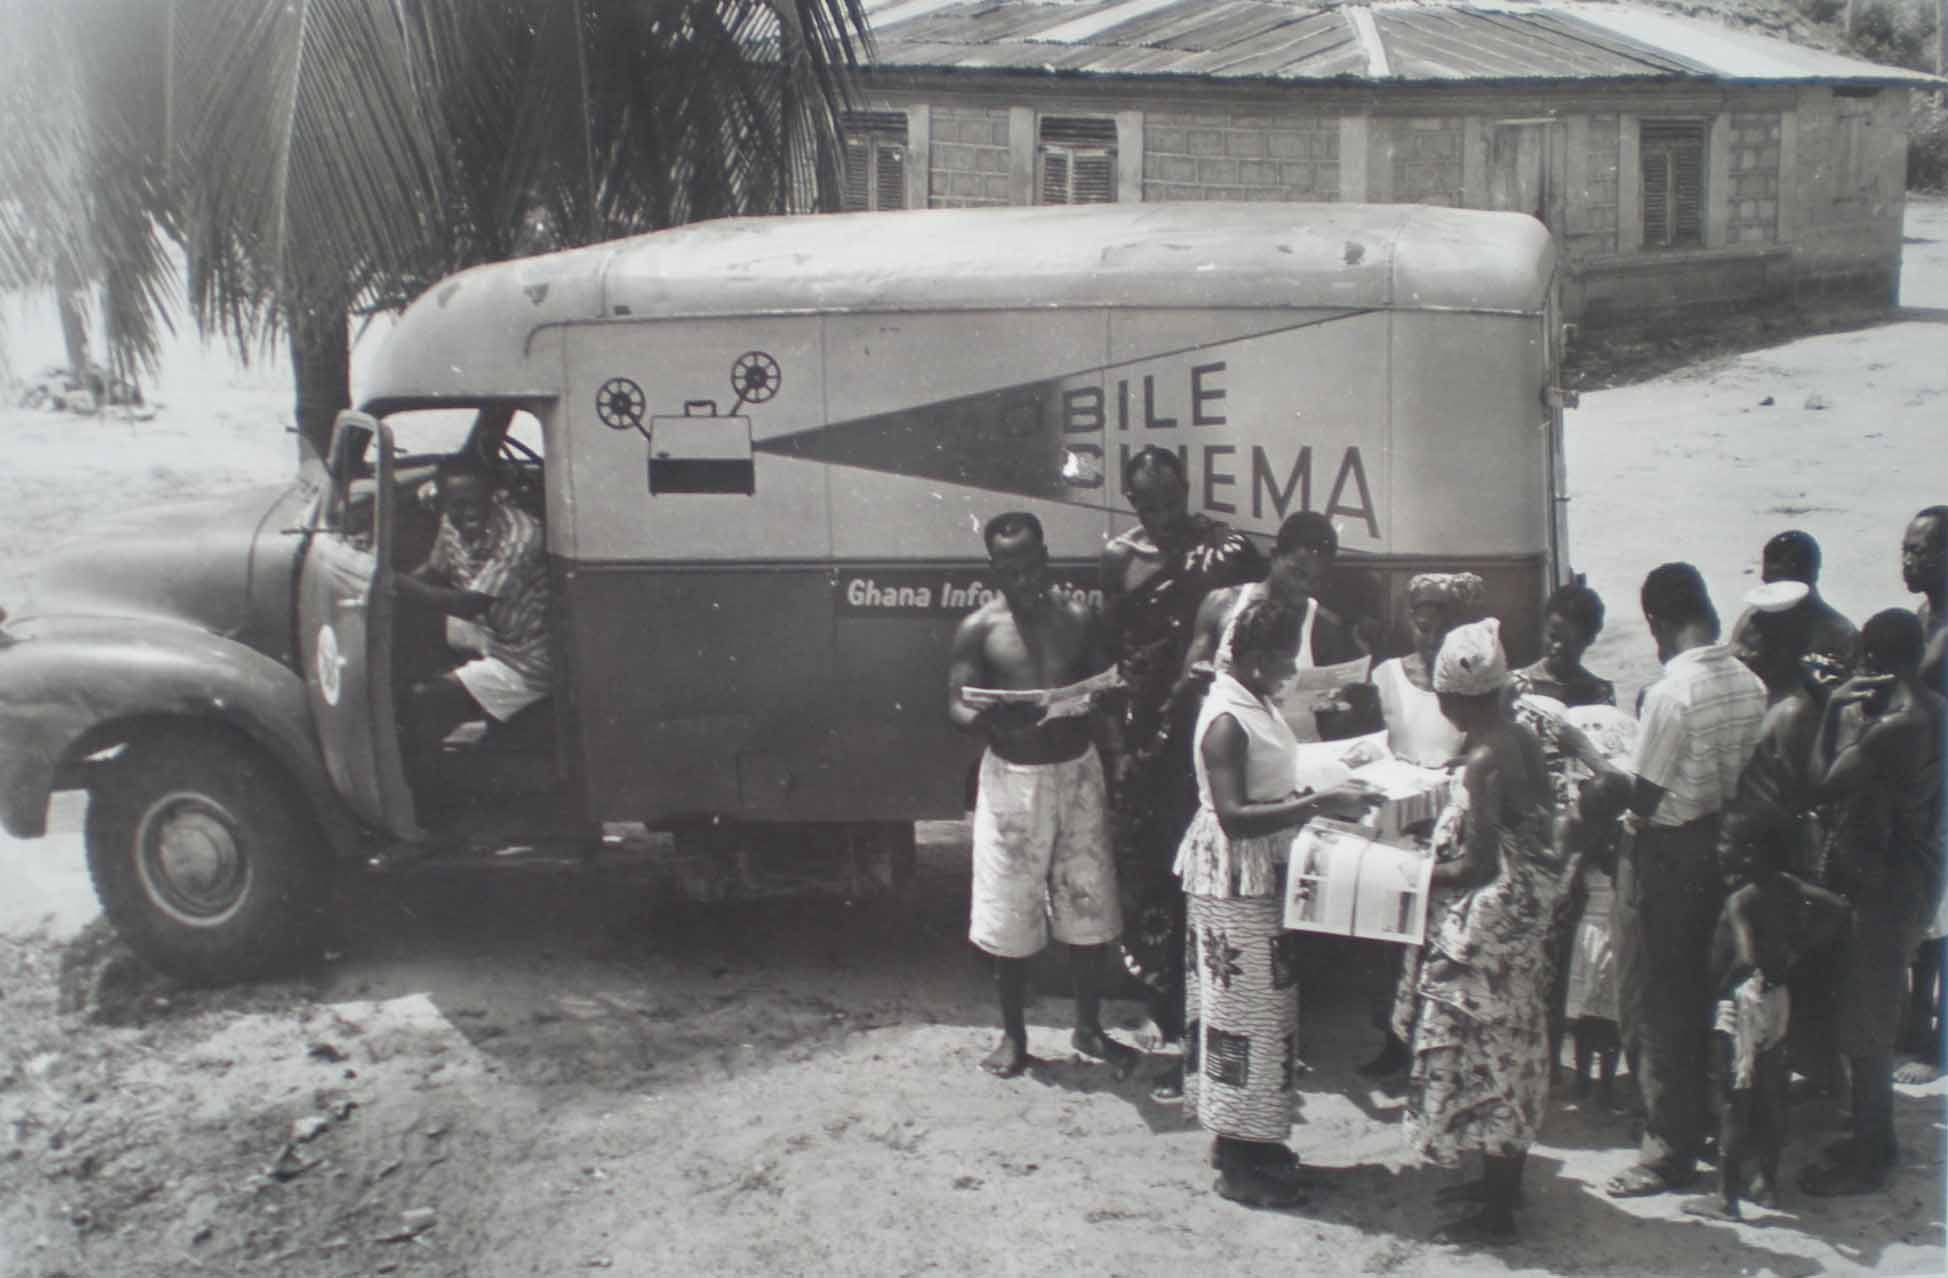 Mobile Cinema Van visits Ghana, 1950s. Information Service Department Photo Library, Ghana.